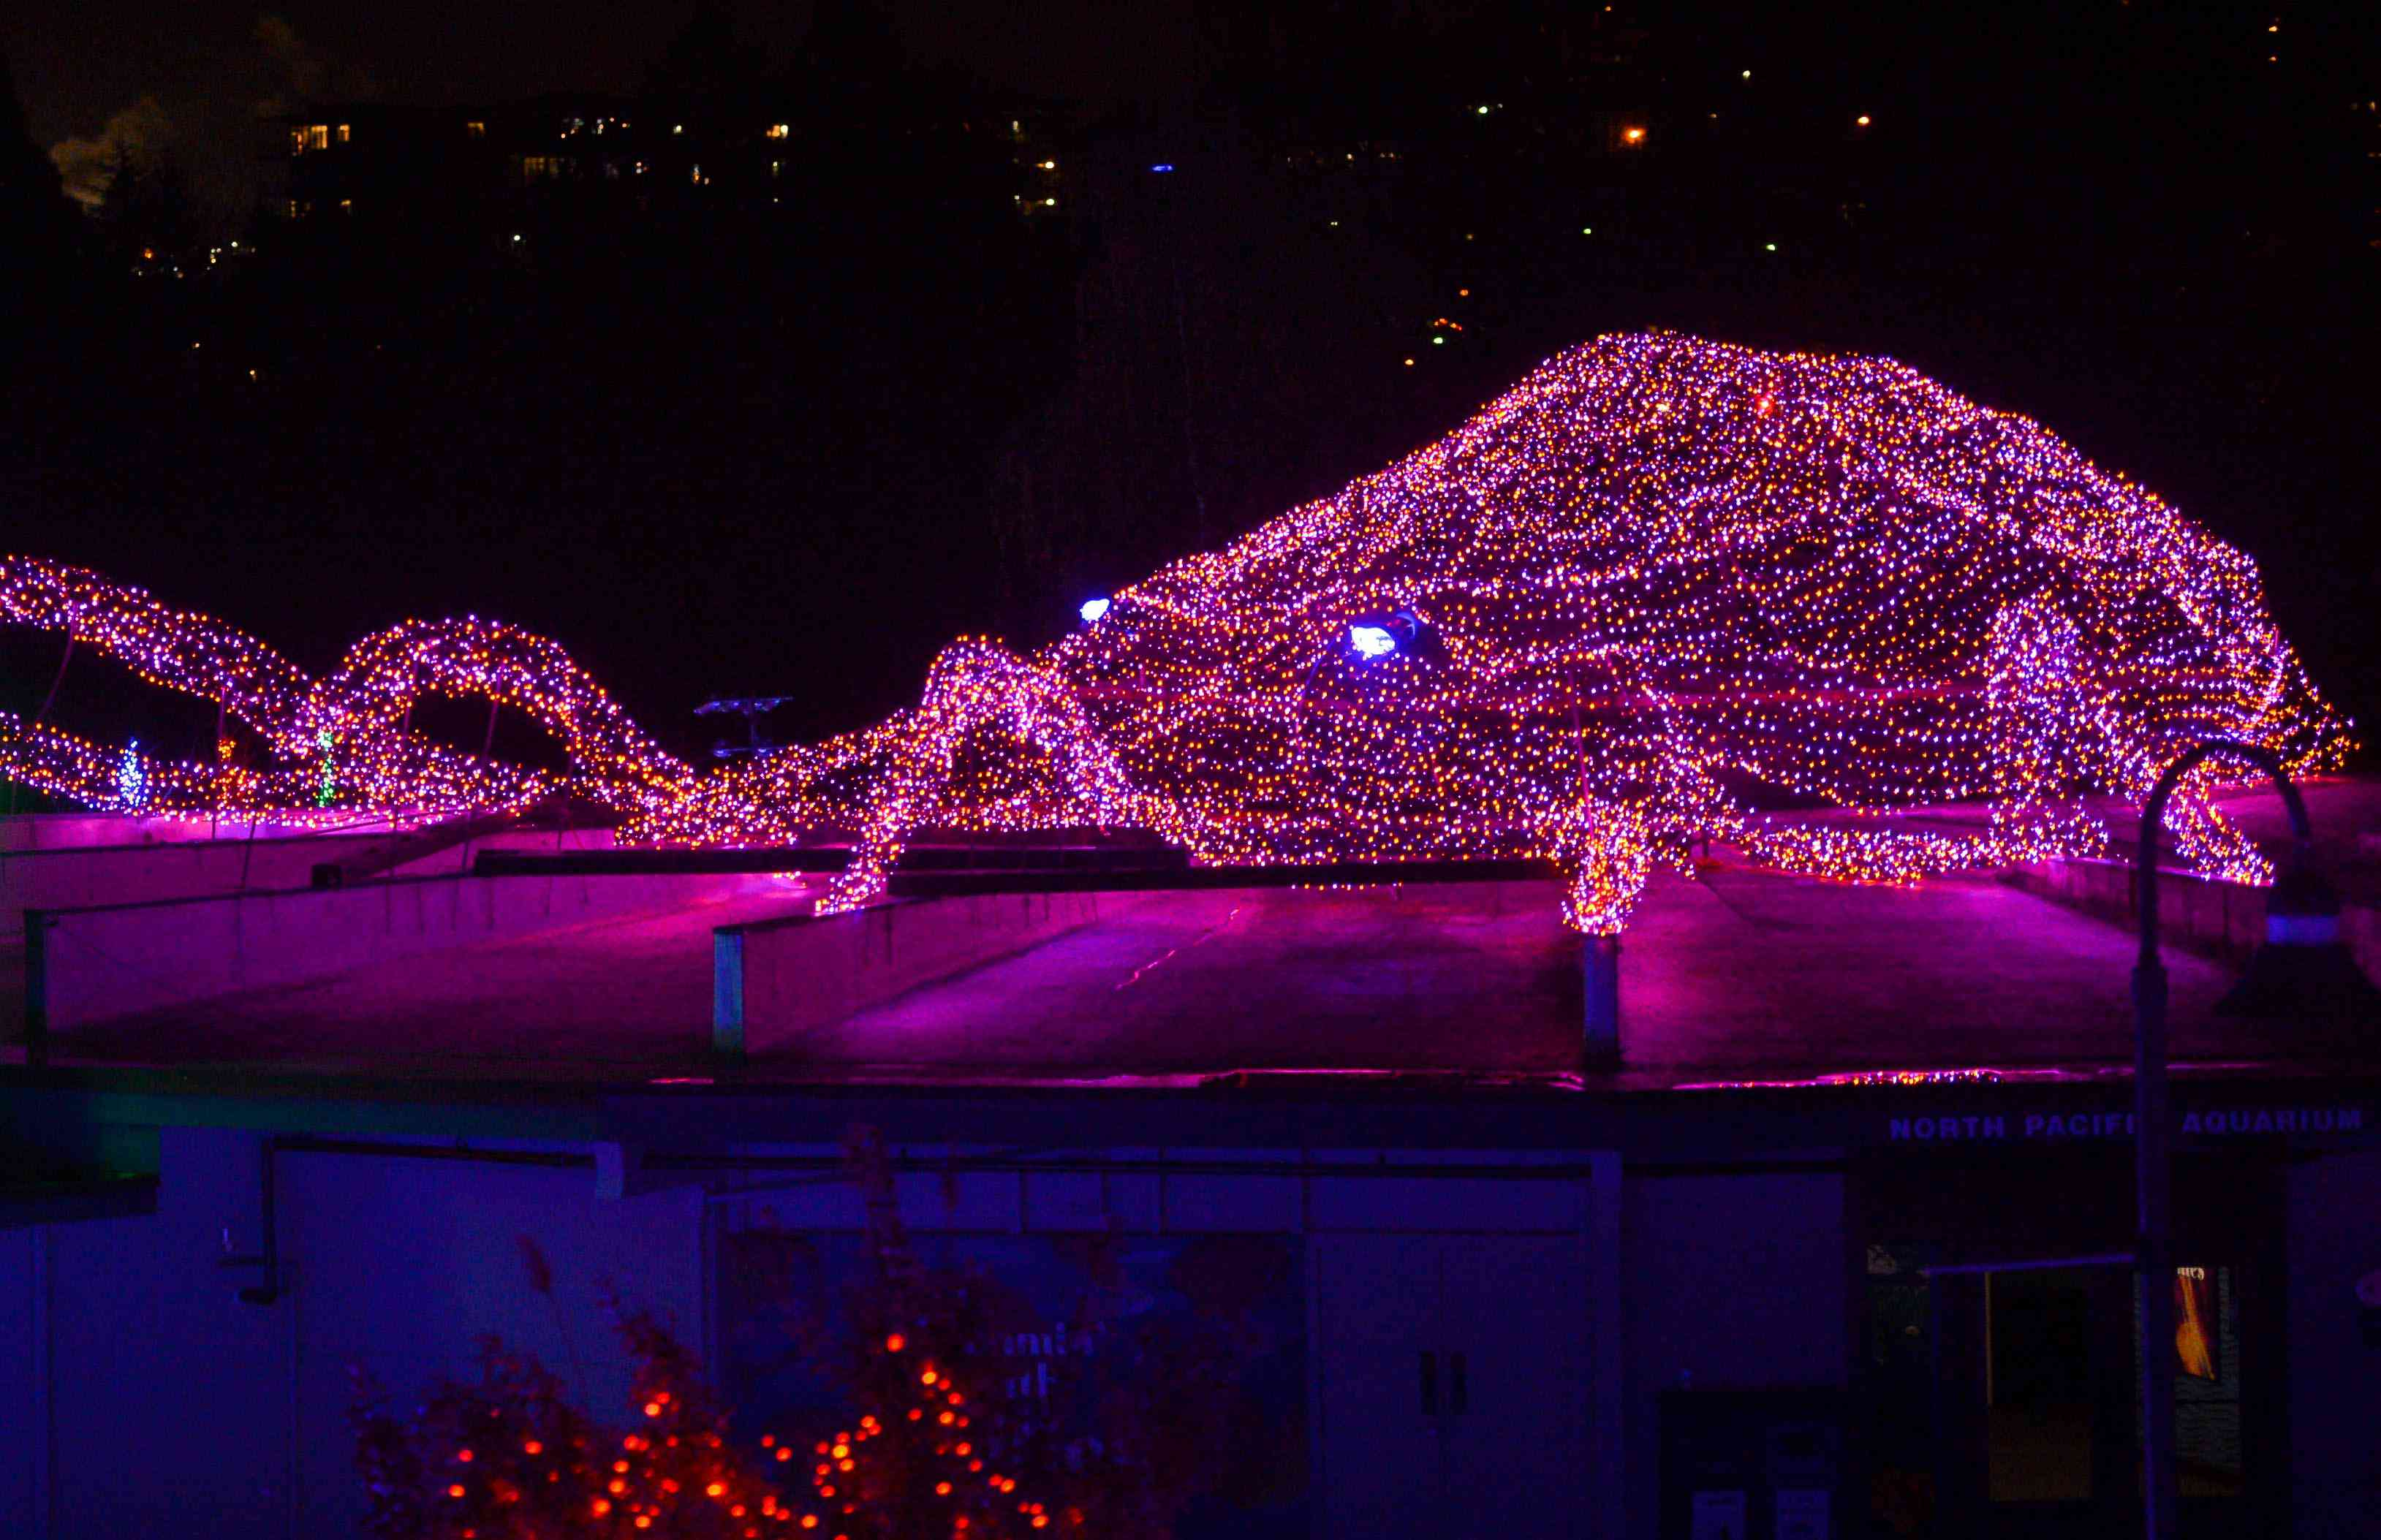 Lights in the shape of an octopus at Point Defiance Zoo & Aquarium